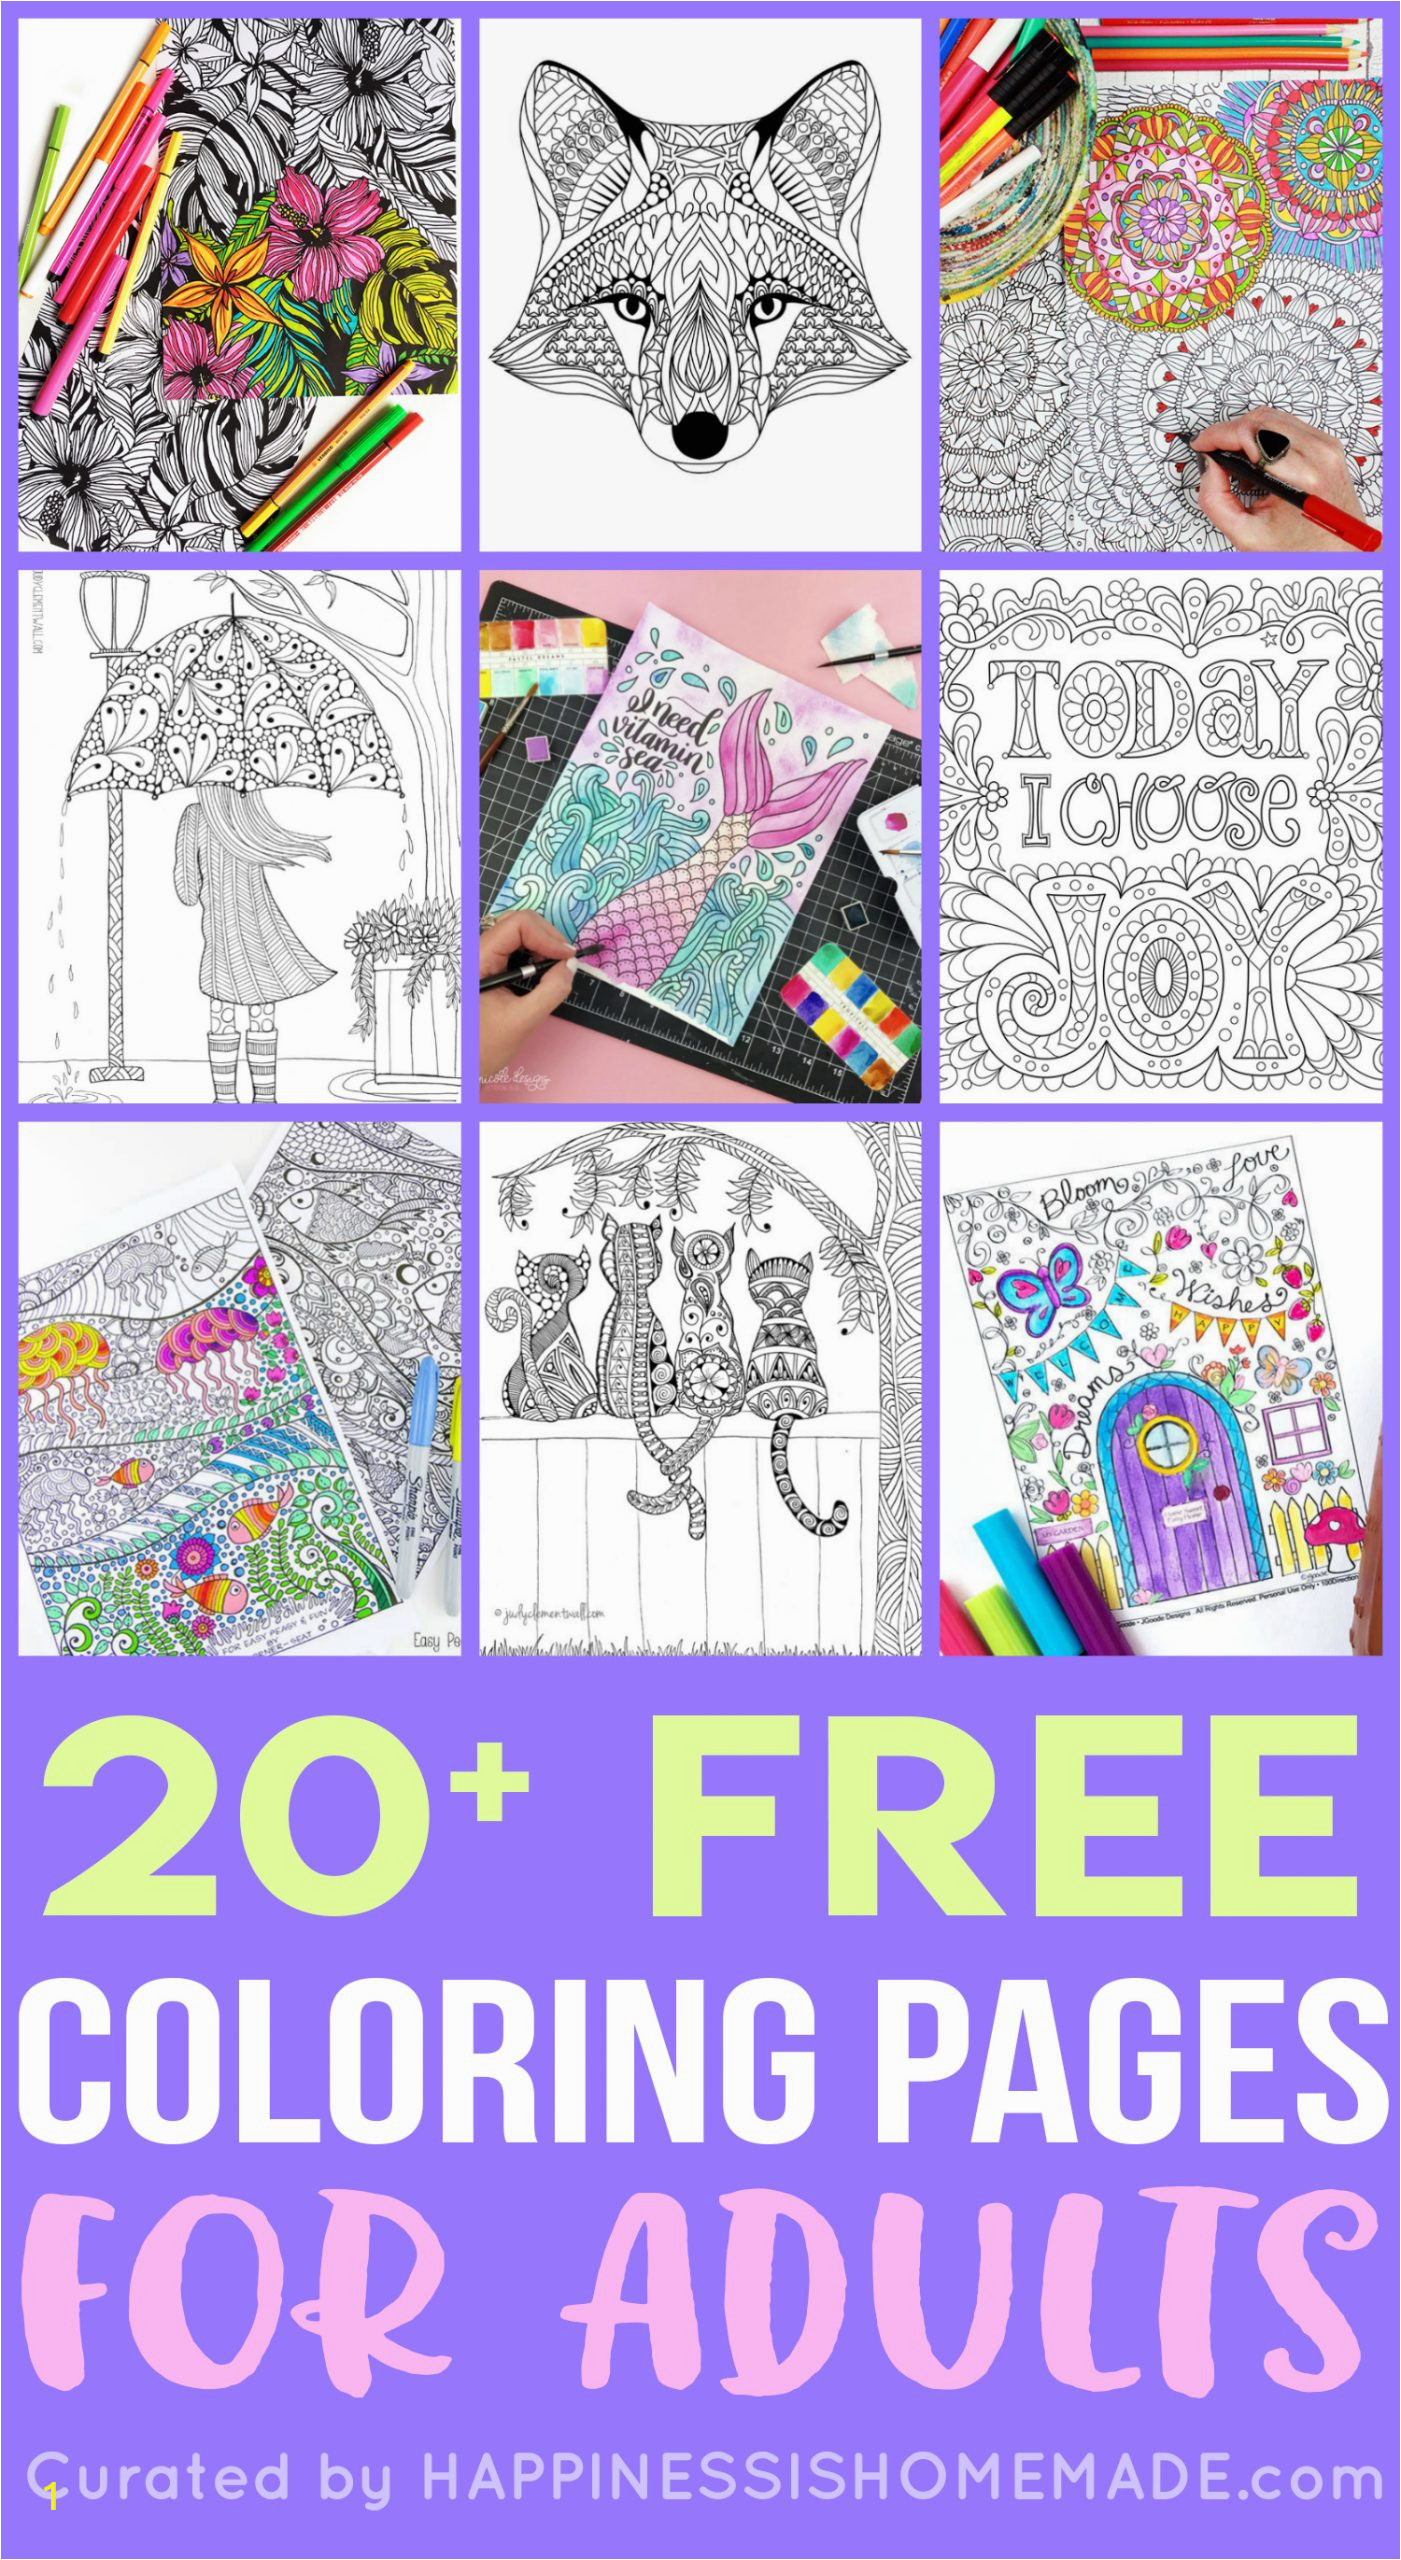 cool coloring books for kids arkham knight pages baseball book coral reef page kindness mermaid jojo mindfulness colouring printable dltk with quotes adults star trek plex labyrinth scaled